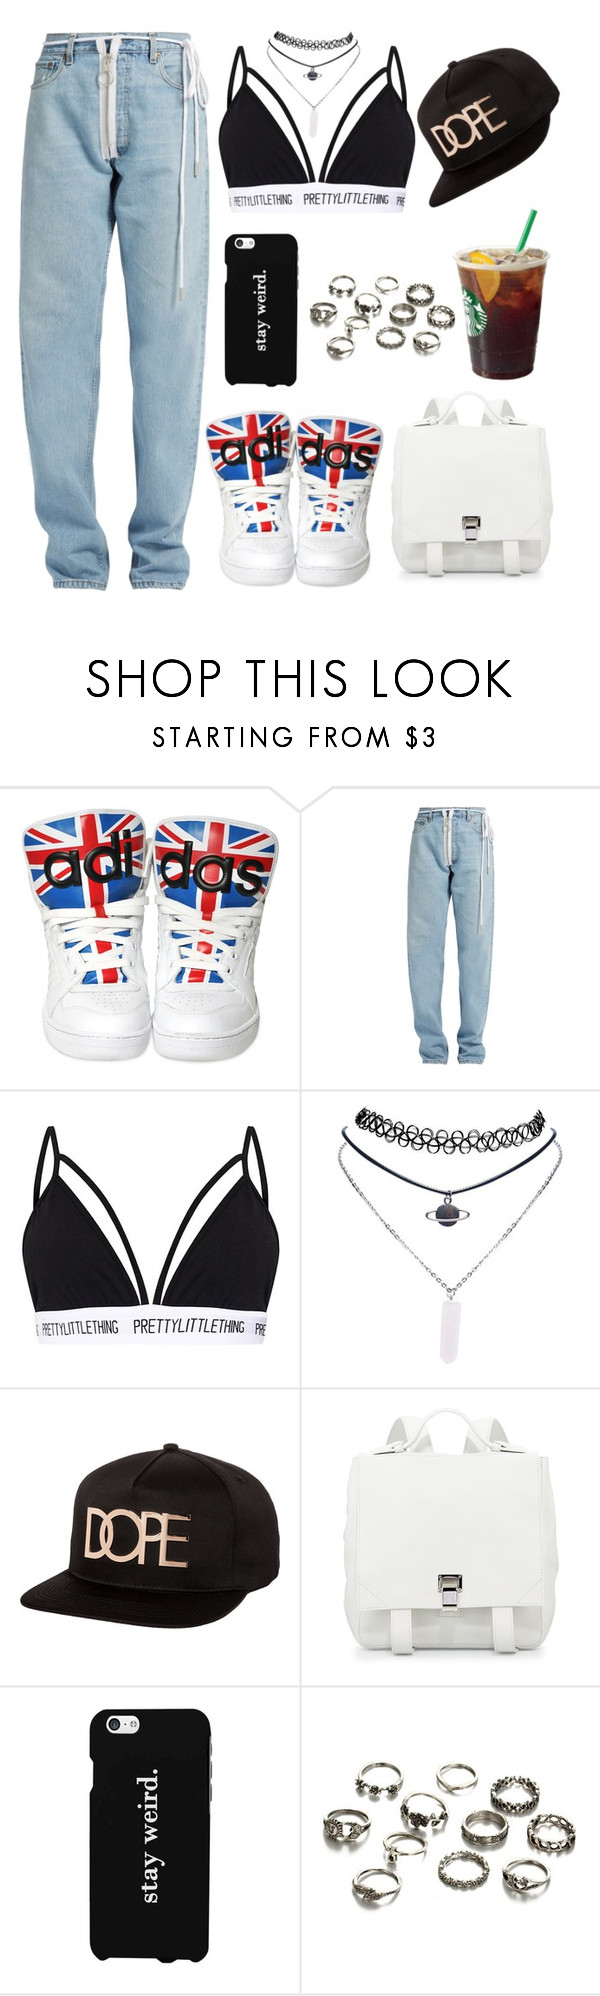 """""""PRETTYLITTLETHING"""" by vampirata ❤ liked on Polyvore featuring adidas, Off-White, Wet Seal, Dope, Proenza Schouler and LG"""